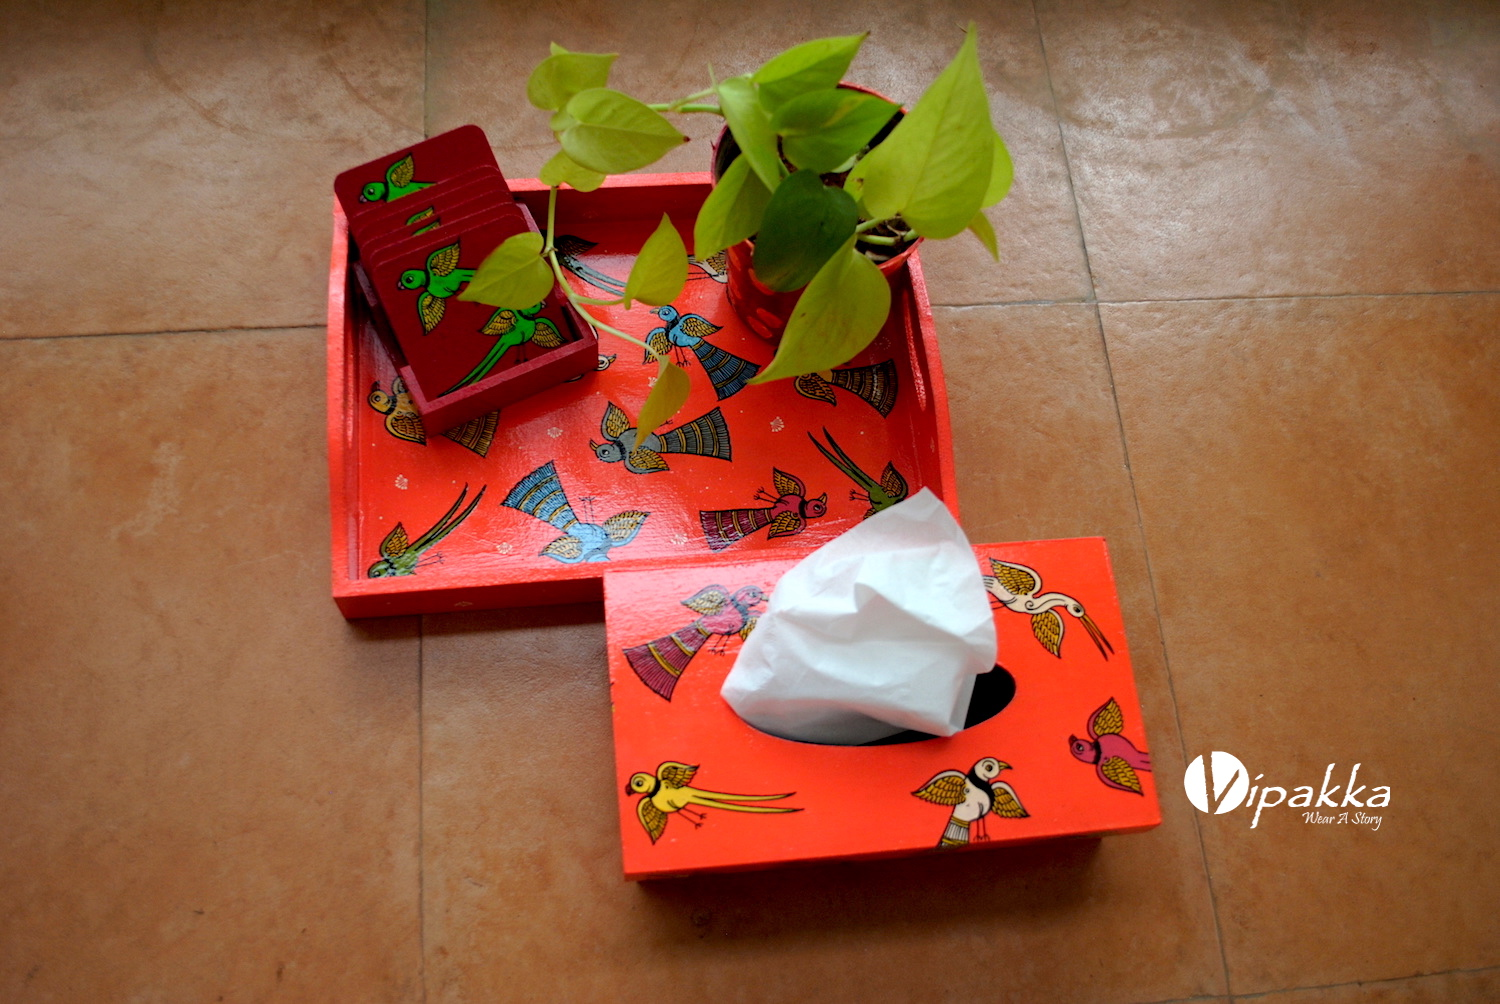 Vipakka-gifting-combo-1 Top 6 Gift Ideas To Make This Diwali Special